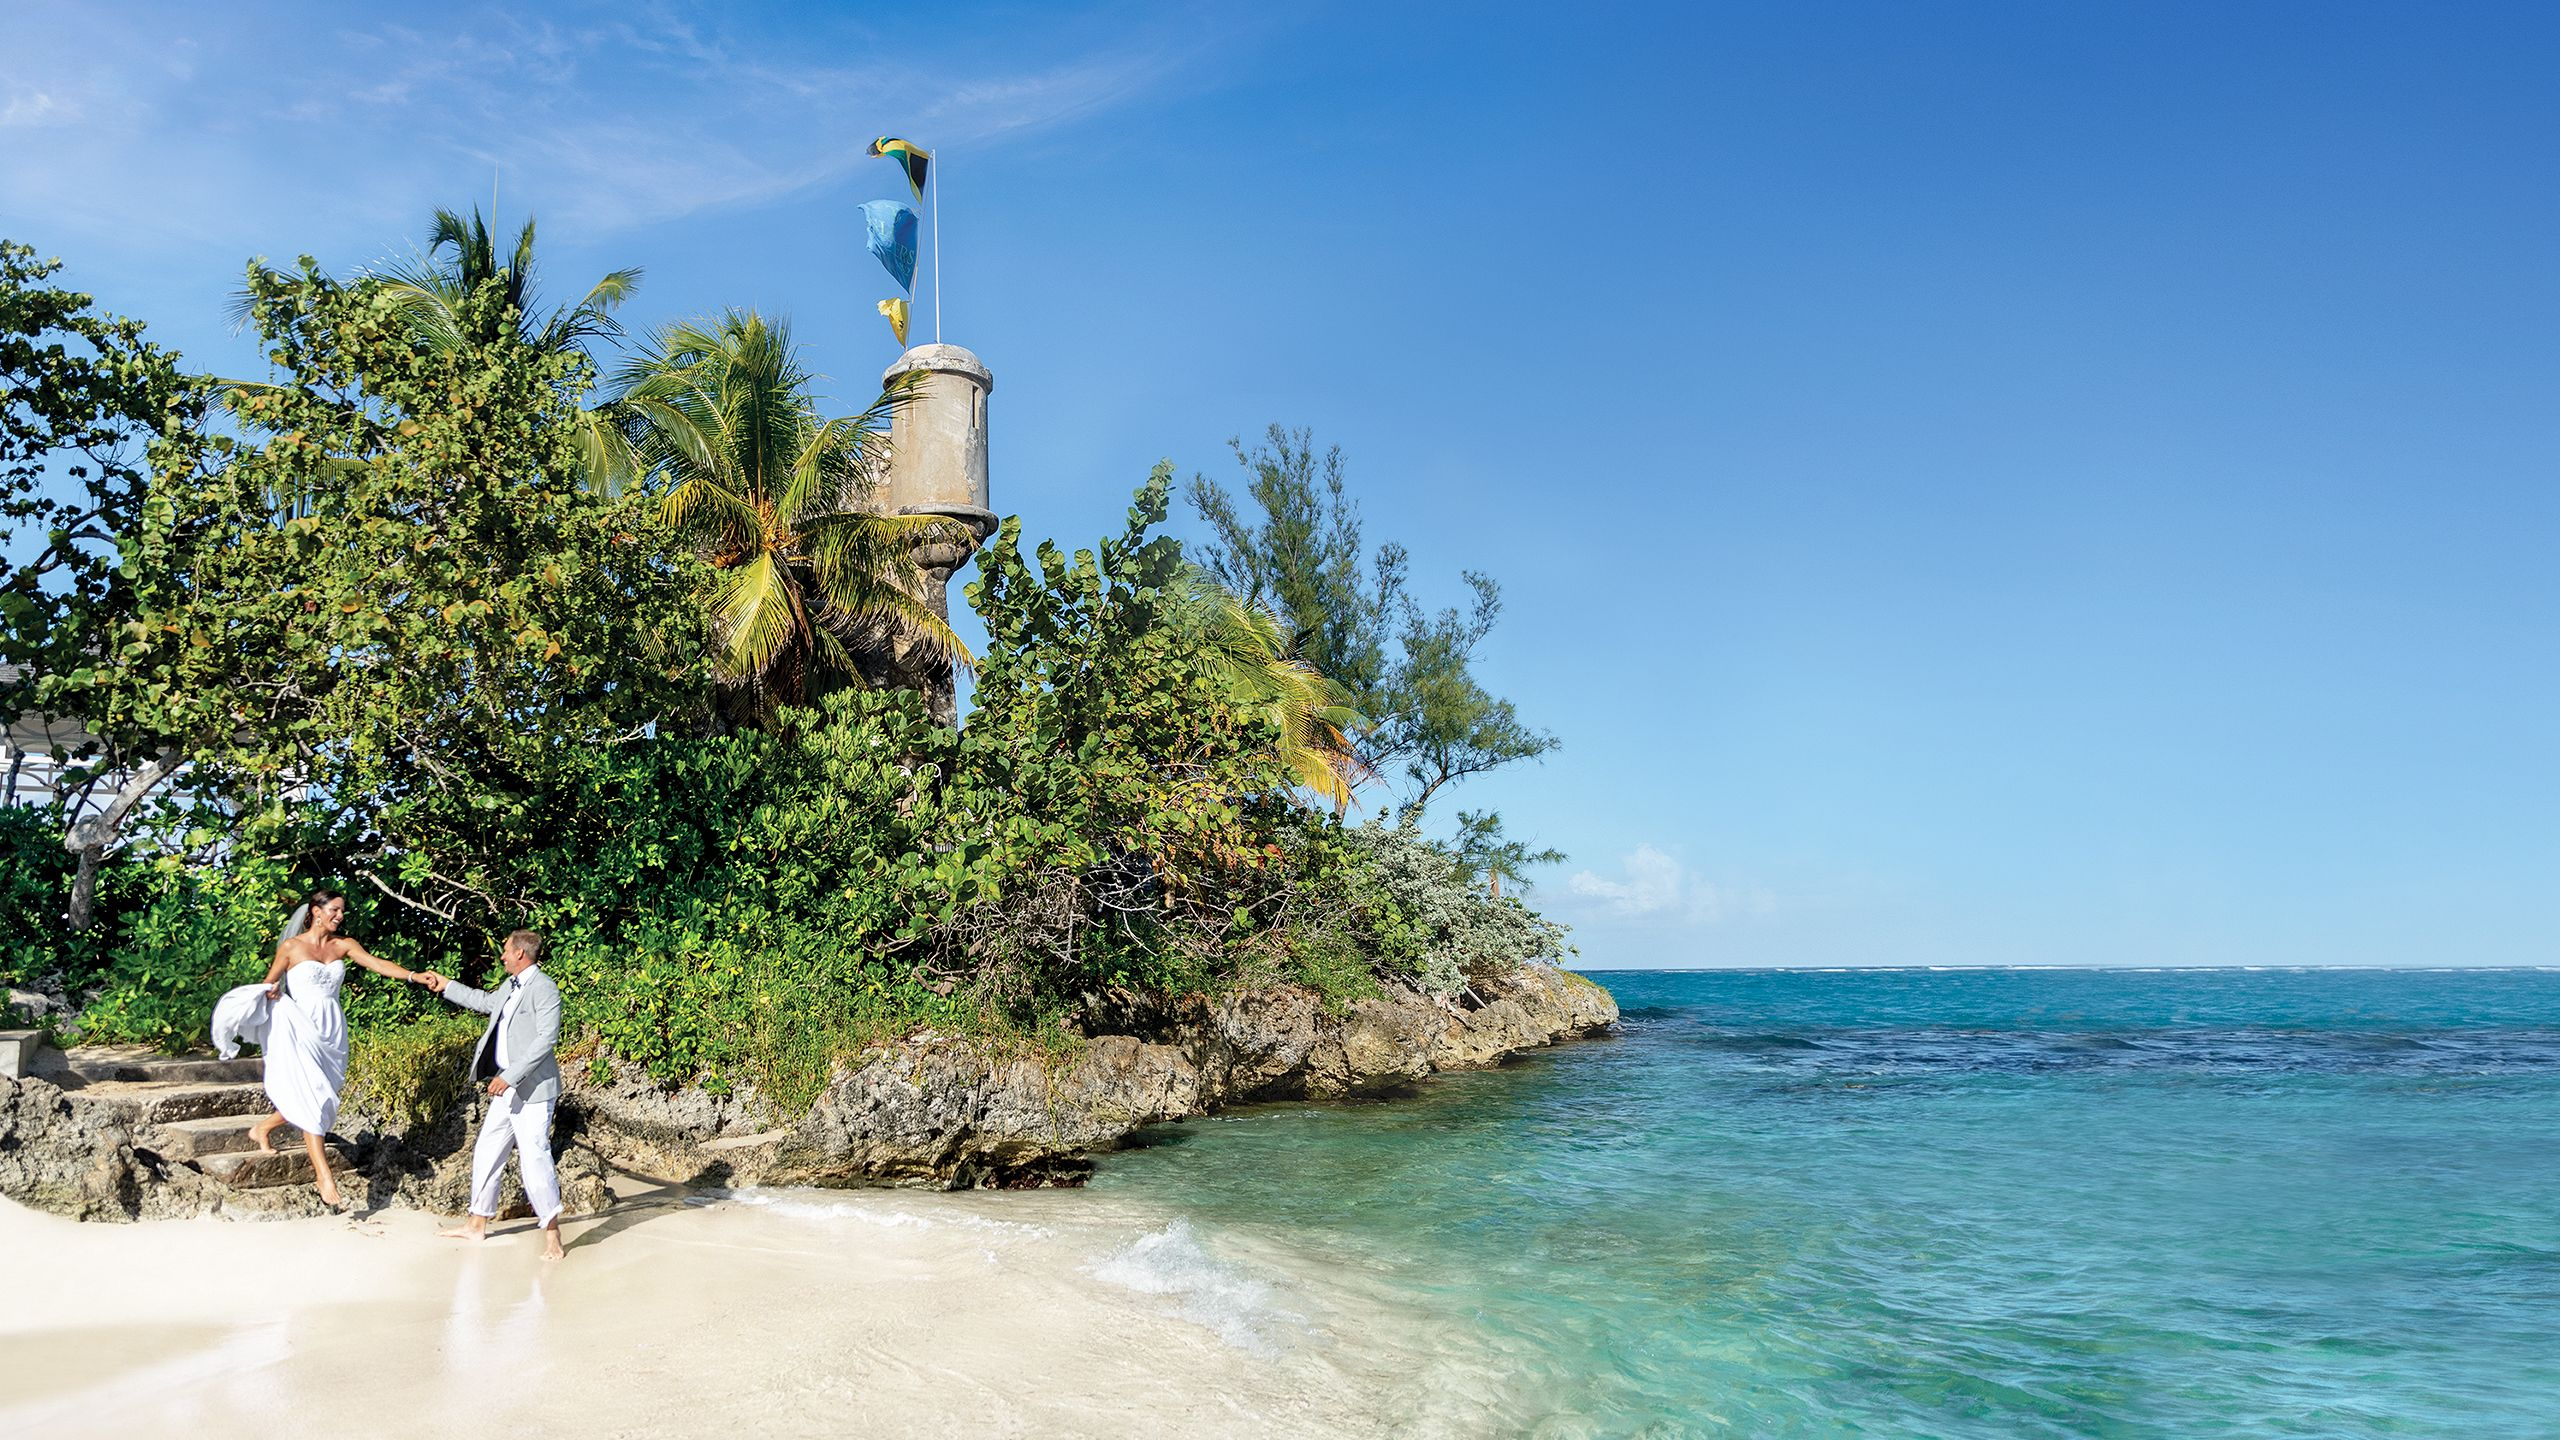 ad972fd1a How to sell destination weddings and honeymoons (and make more money doing  it) at Couples  four oceanfront luxury all-inclusive resorts